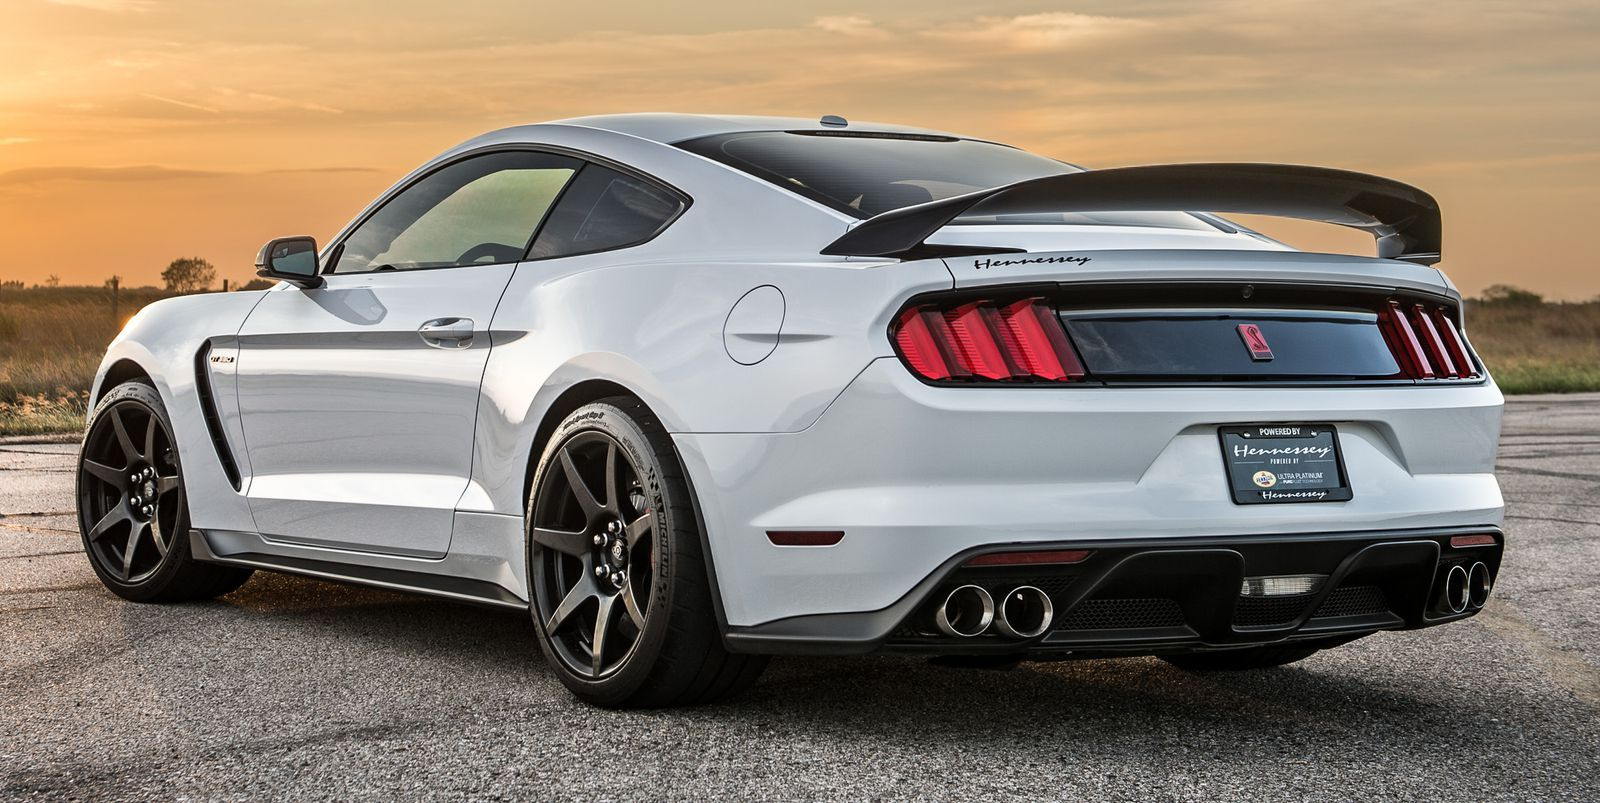 Hennessey S Supercharged Shelby Mustang Gt350 R Sounds Seriously